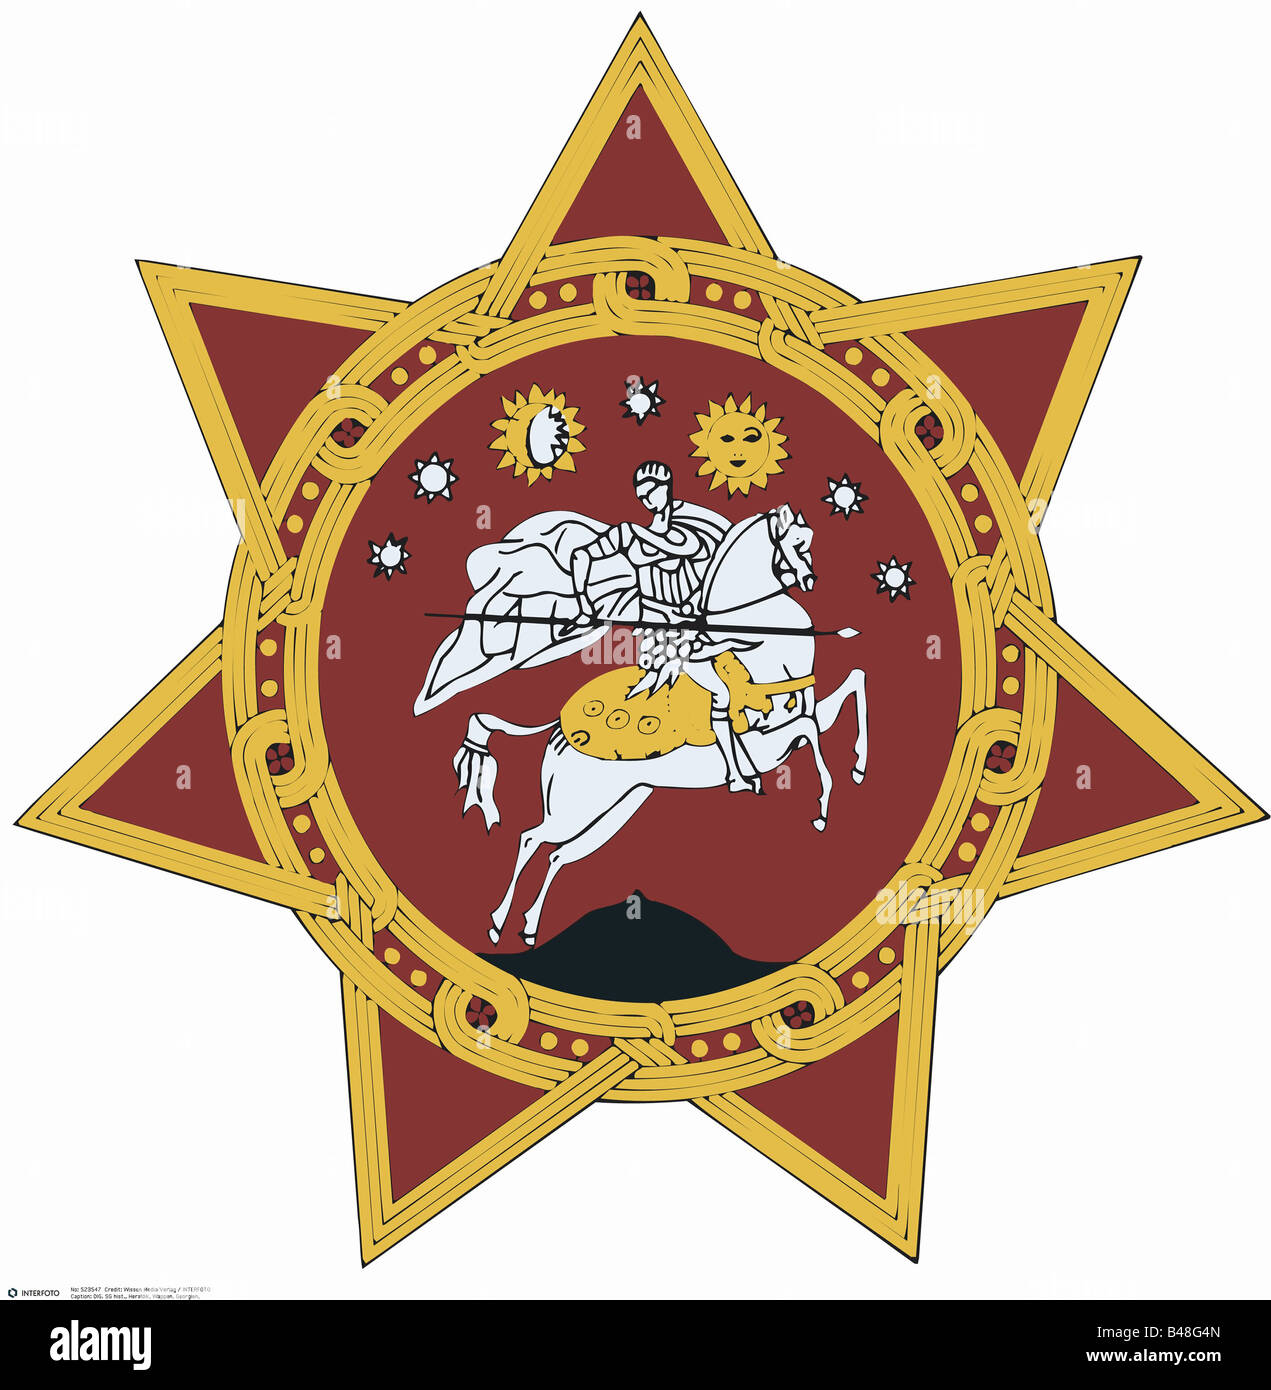 heraldry, coat of arms, Georgia, national coat of arms (1990 - 2004) symbol, emblem, crest, Asia, geography, Georgian Stock Photo